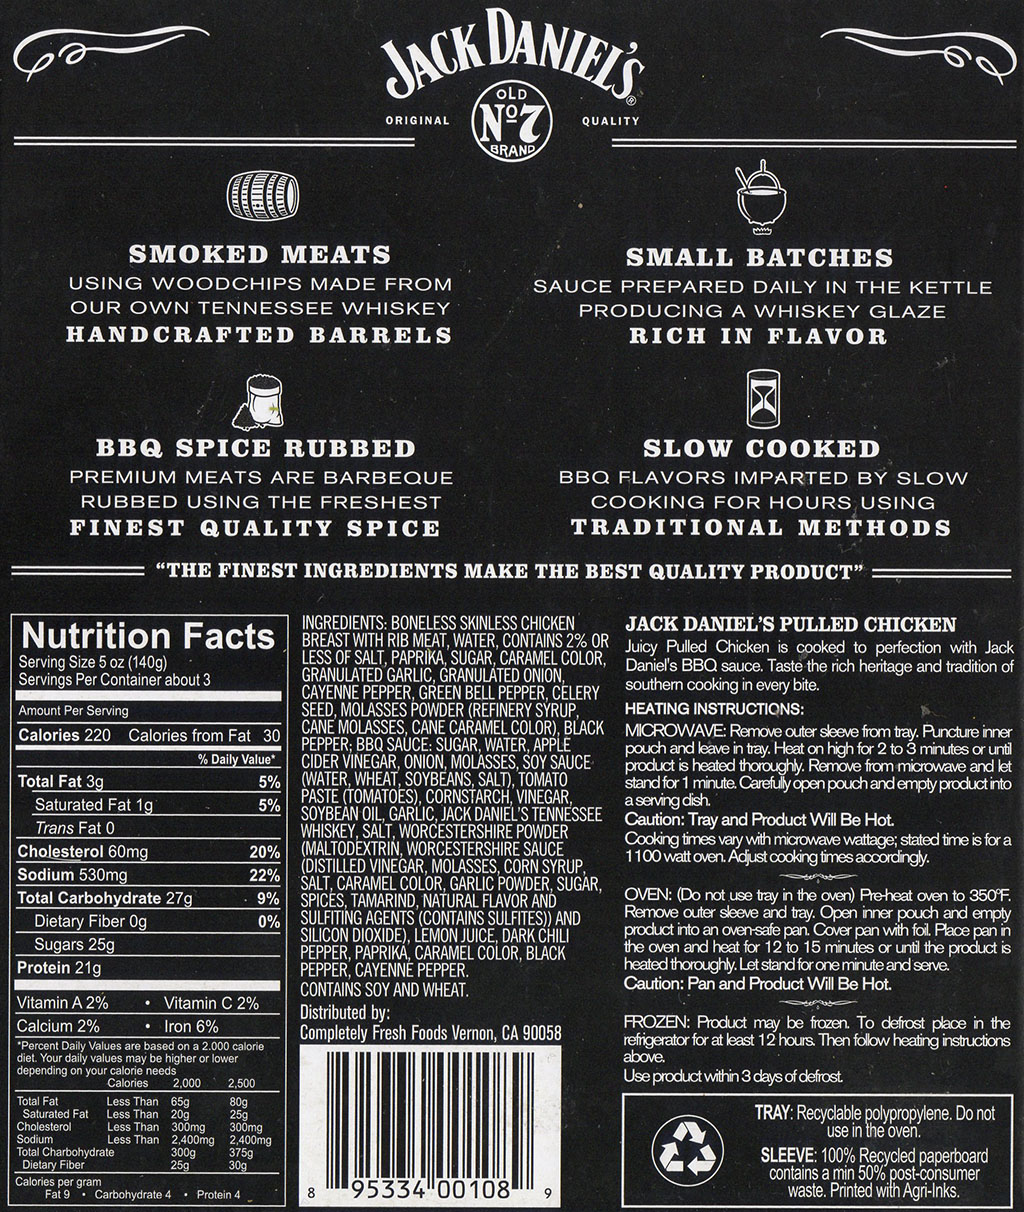 Jack Daniel's Pulled Chicken cooking instructions, ingredients, nutrition